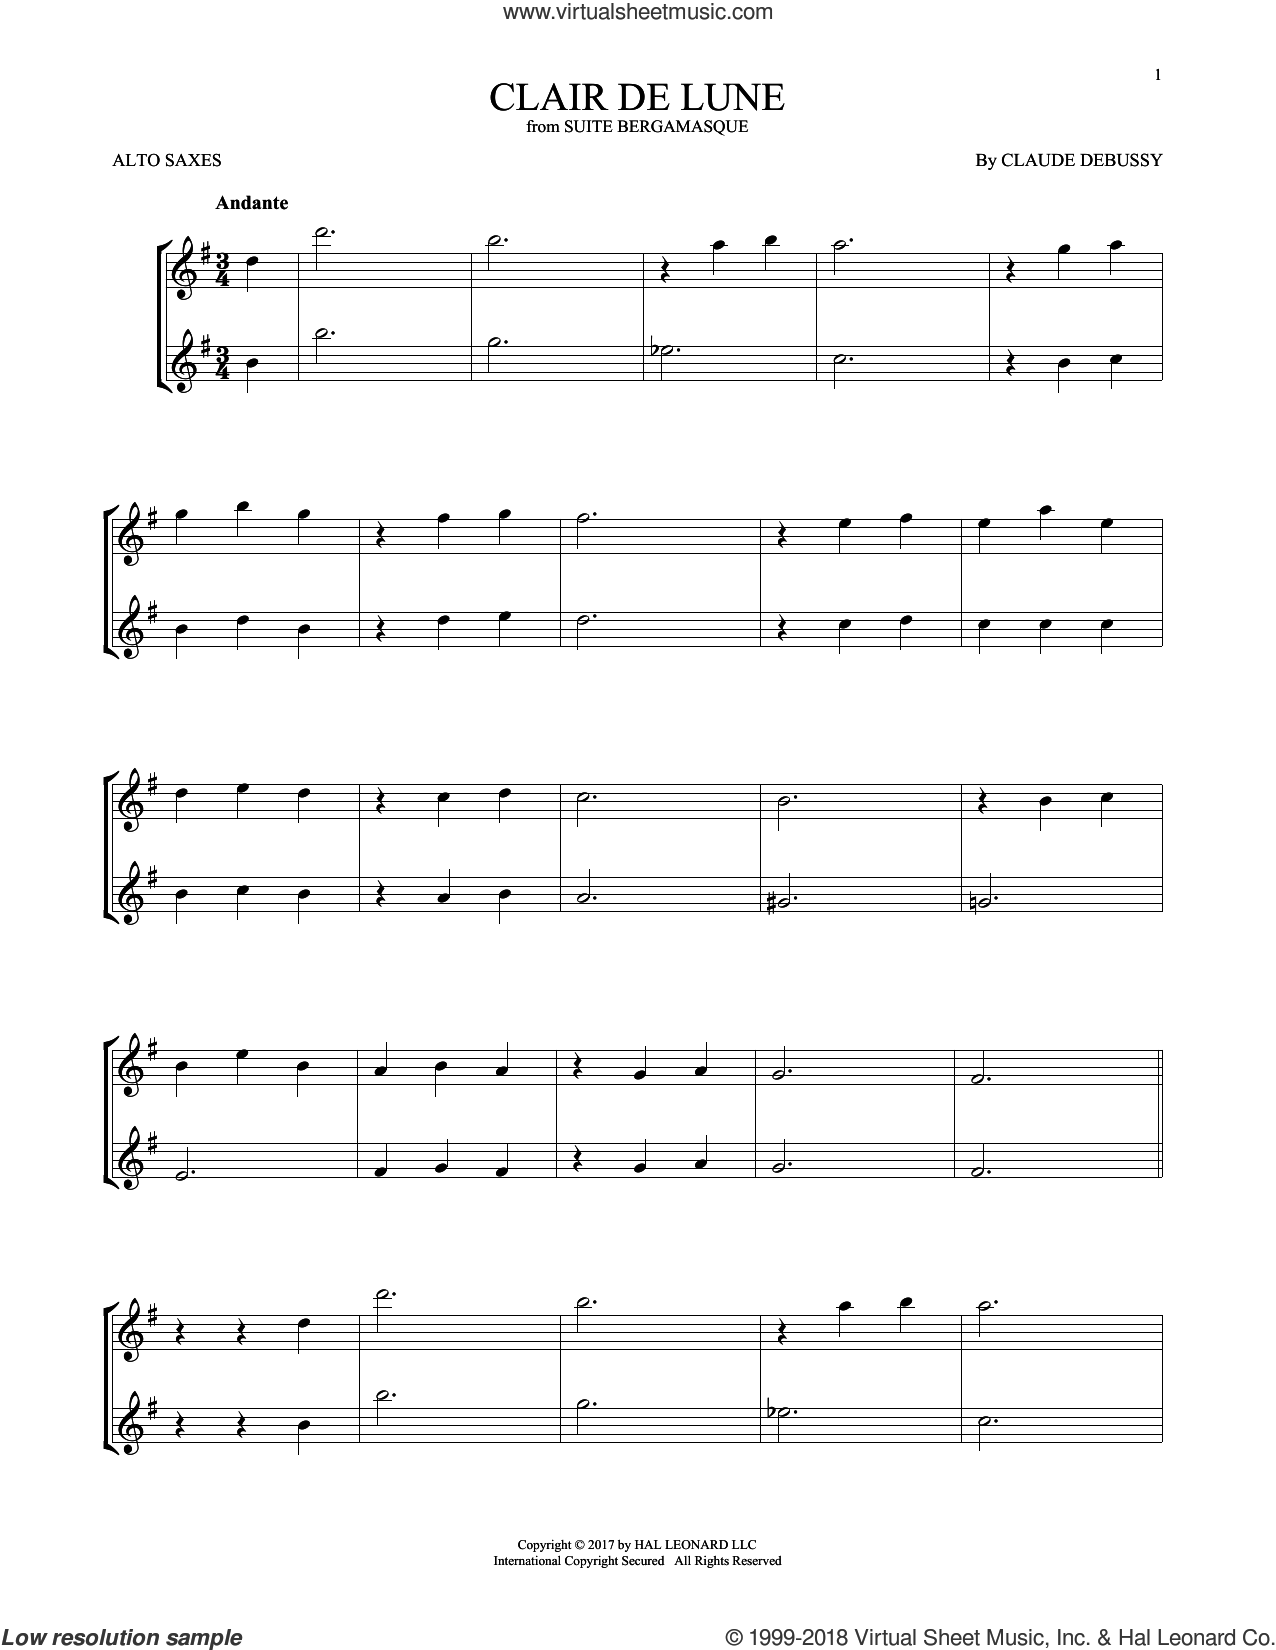 Clair De Lune sheet music for two alto saxophones (duets) by Claude Debussy, classical score, intermediate skill level